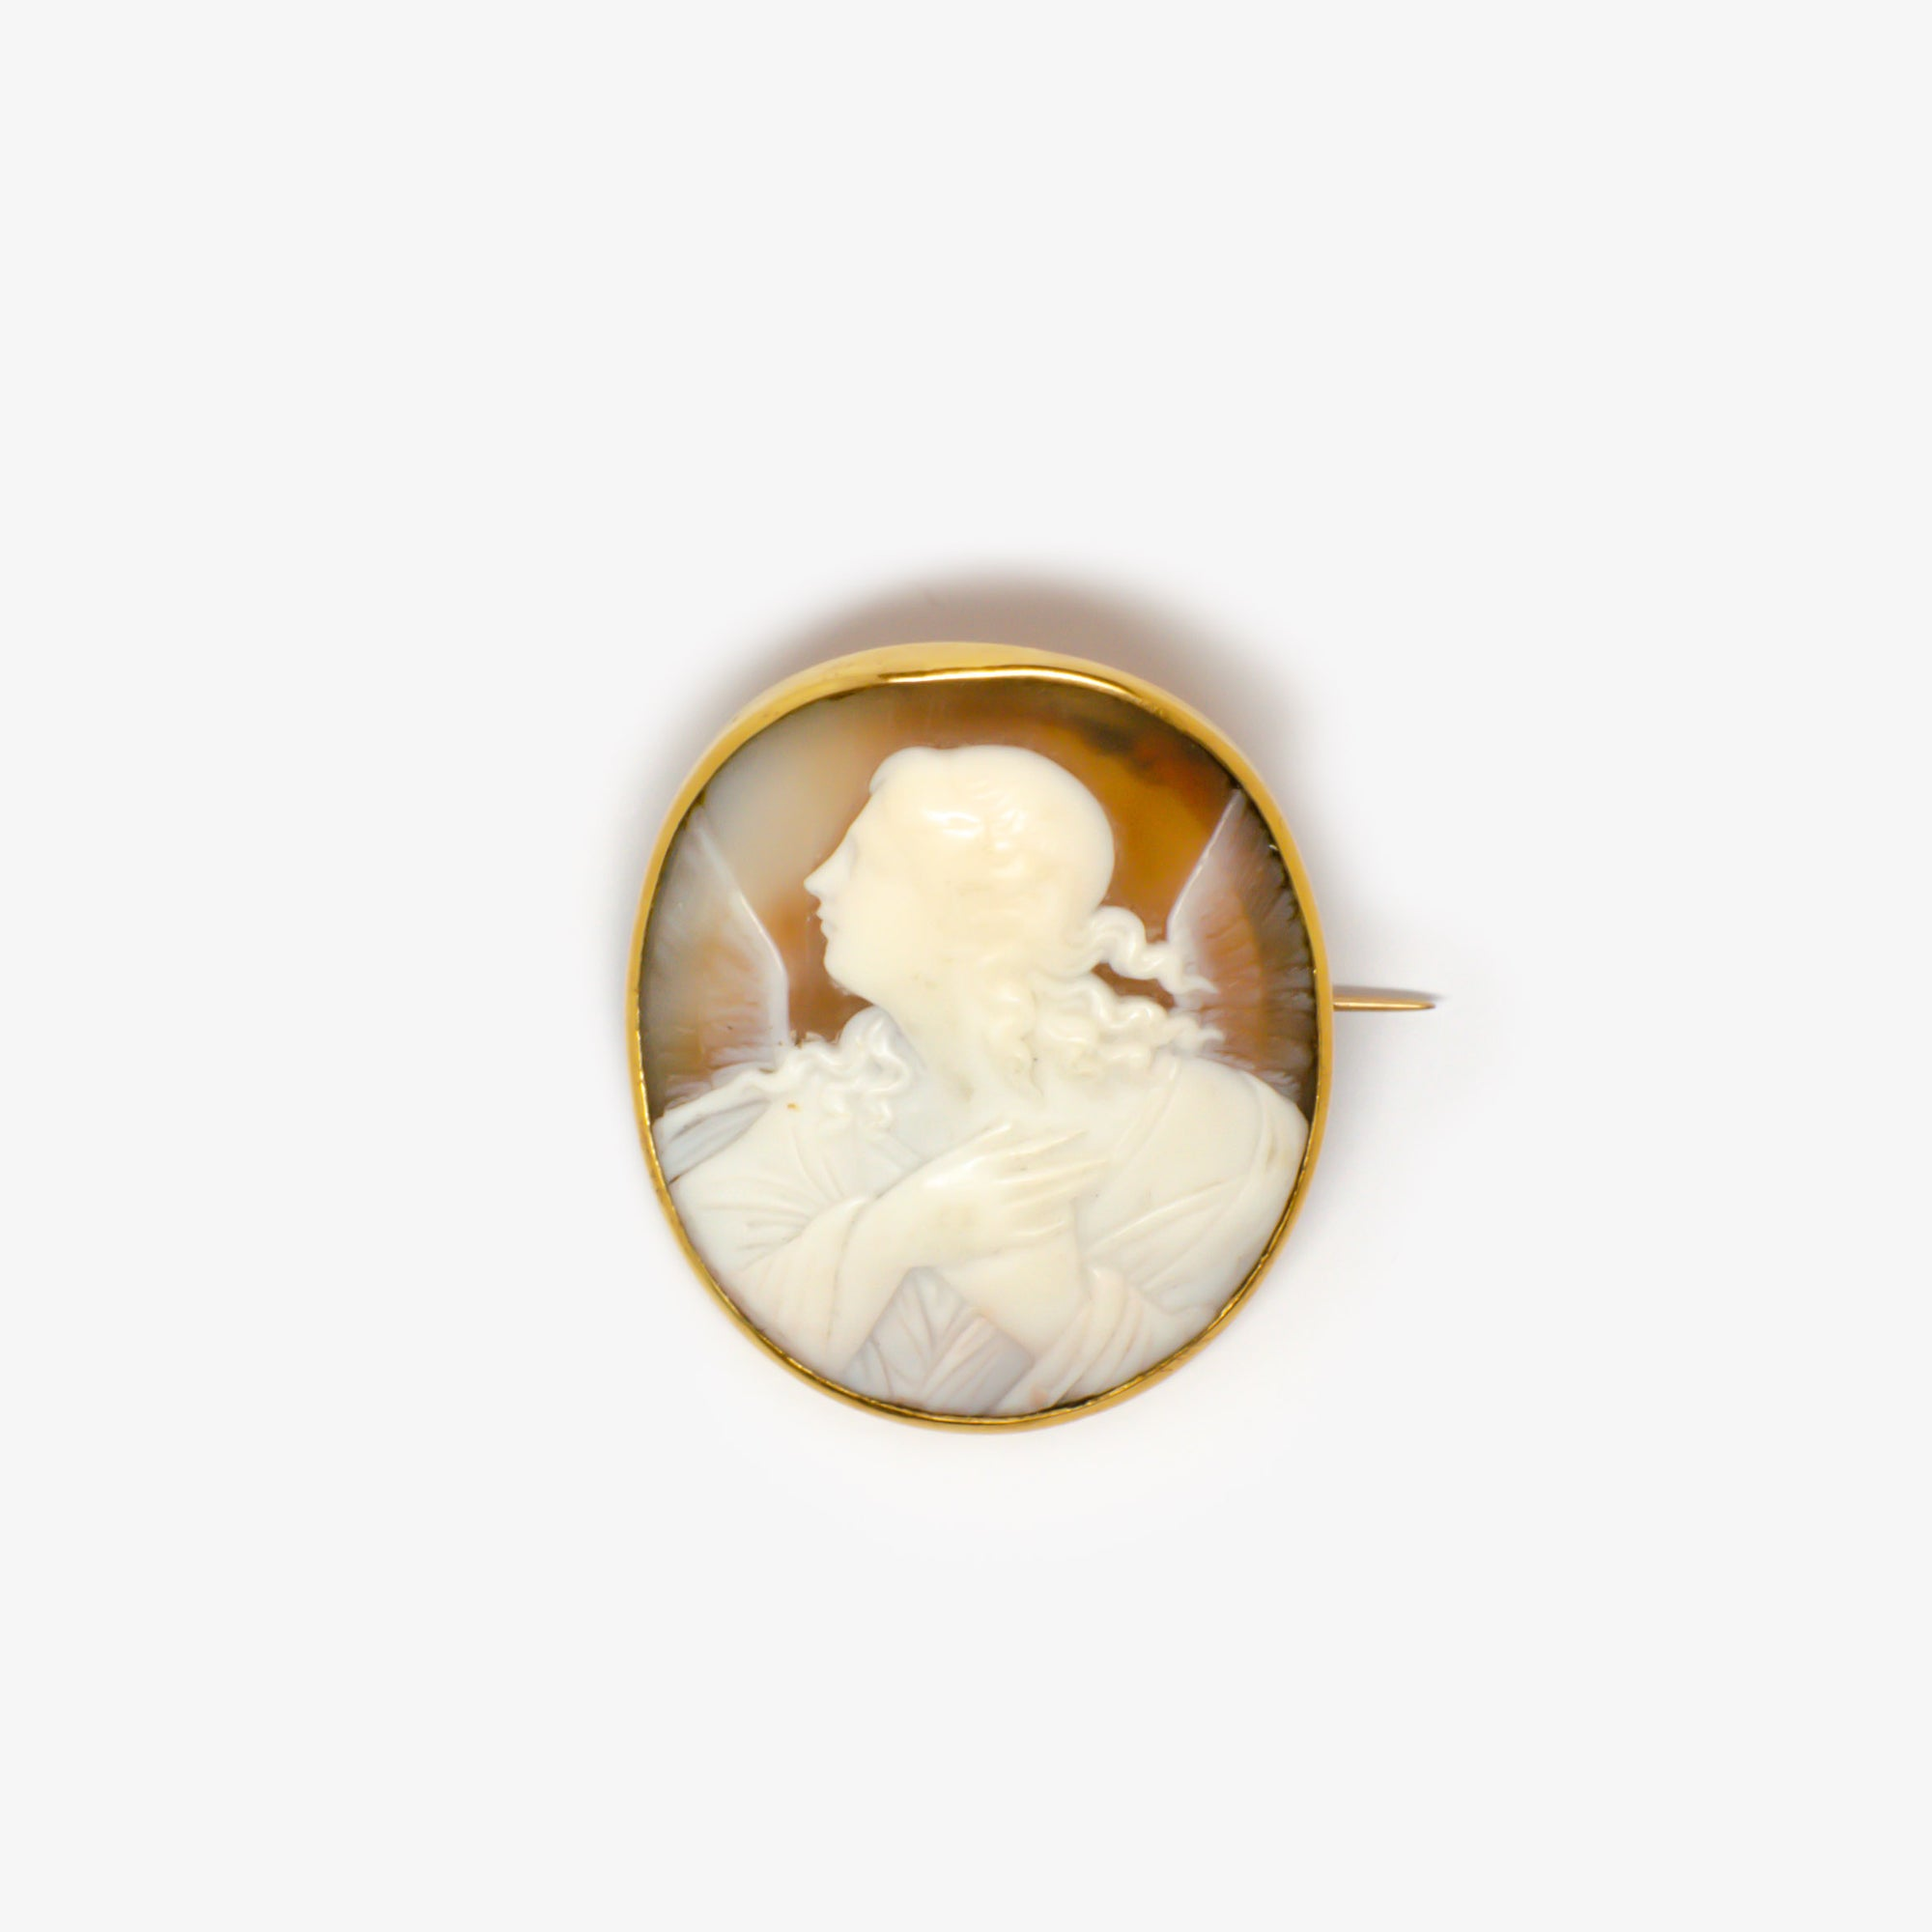 Jordans Jewellers antique and Italian winged angel cameo brooch